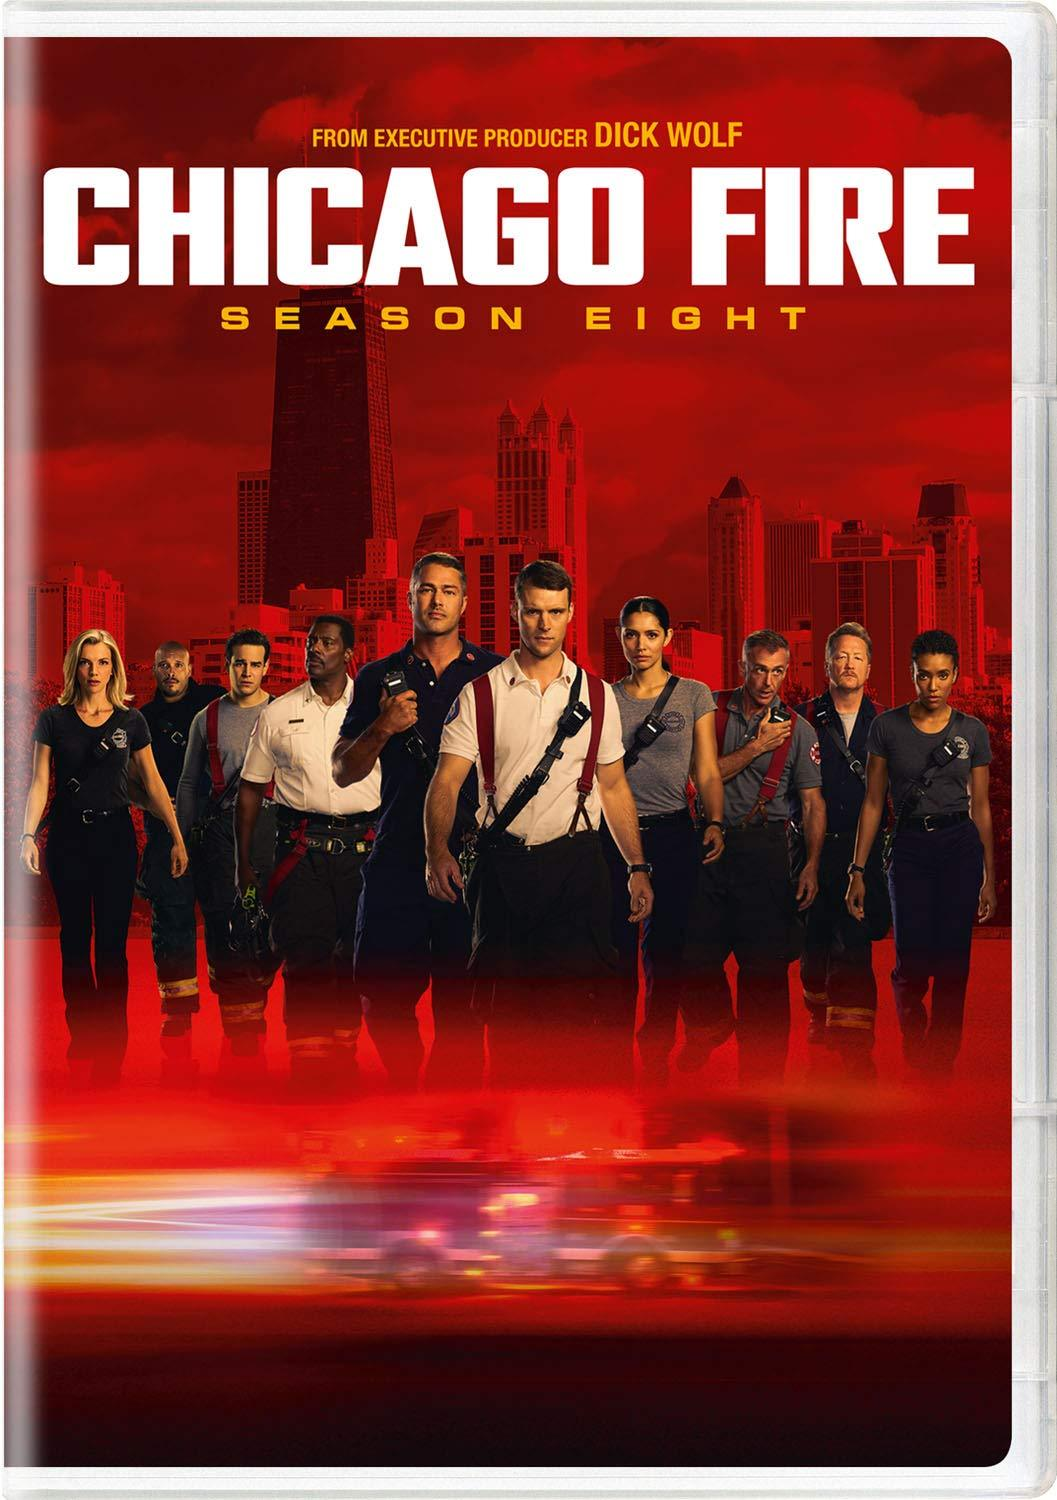 Chicago Fire Season 8 DVD Universal Studios DVDs & Blu-ray Discs